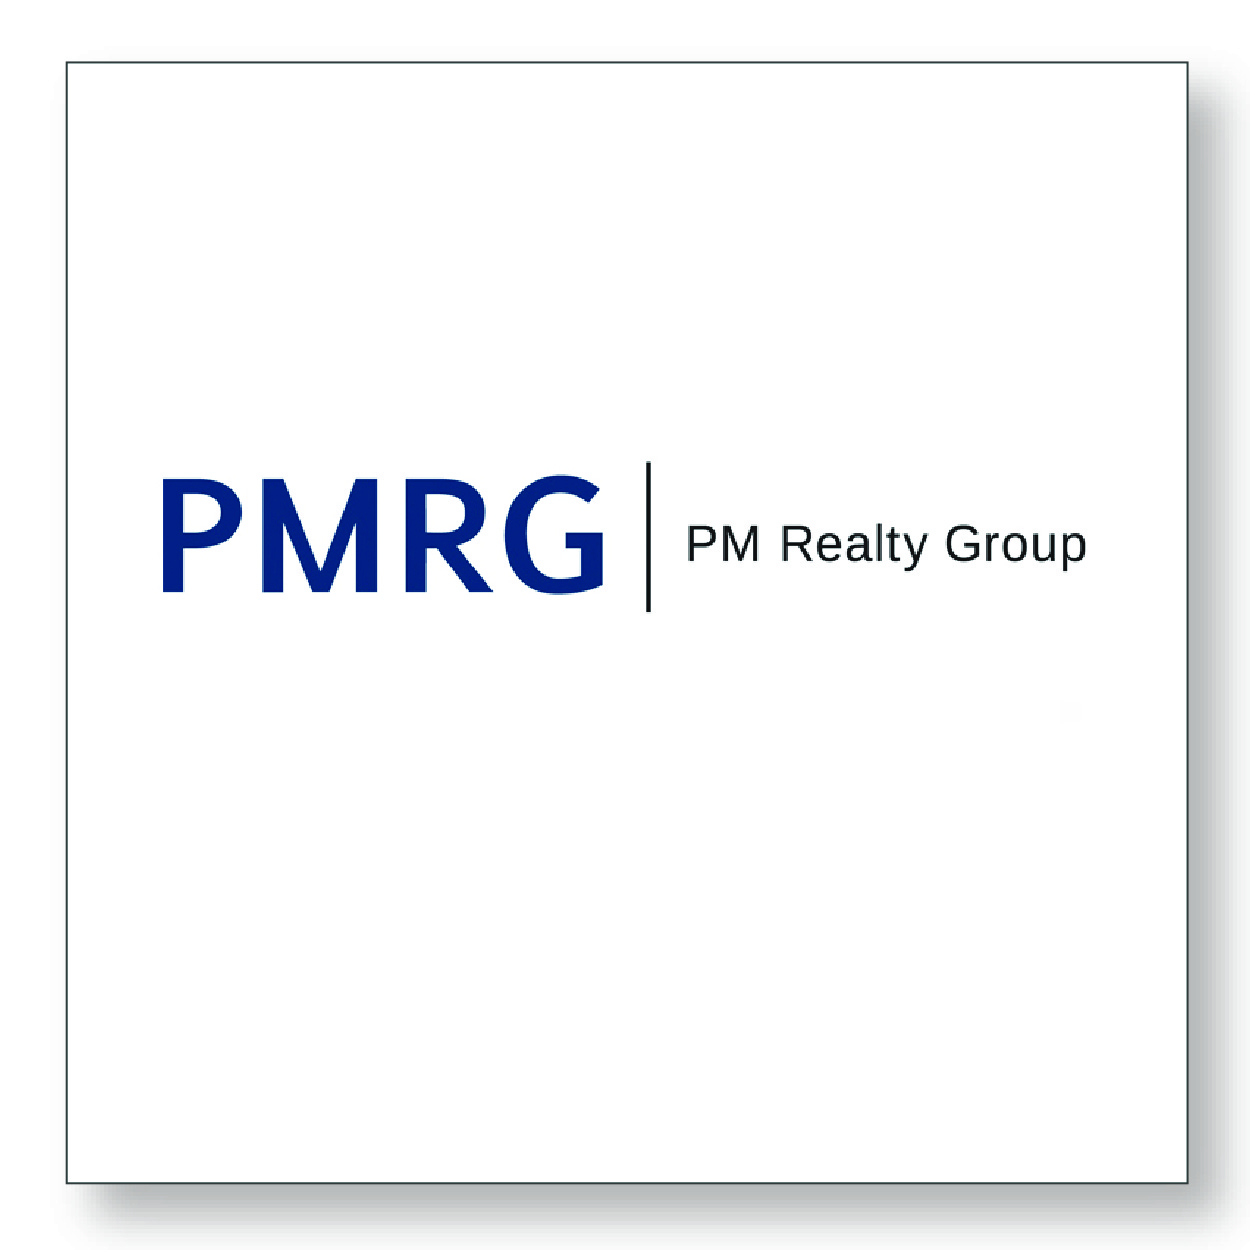 PM Realty